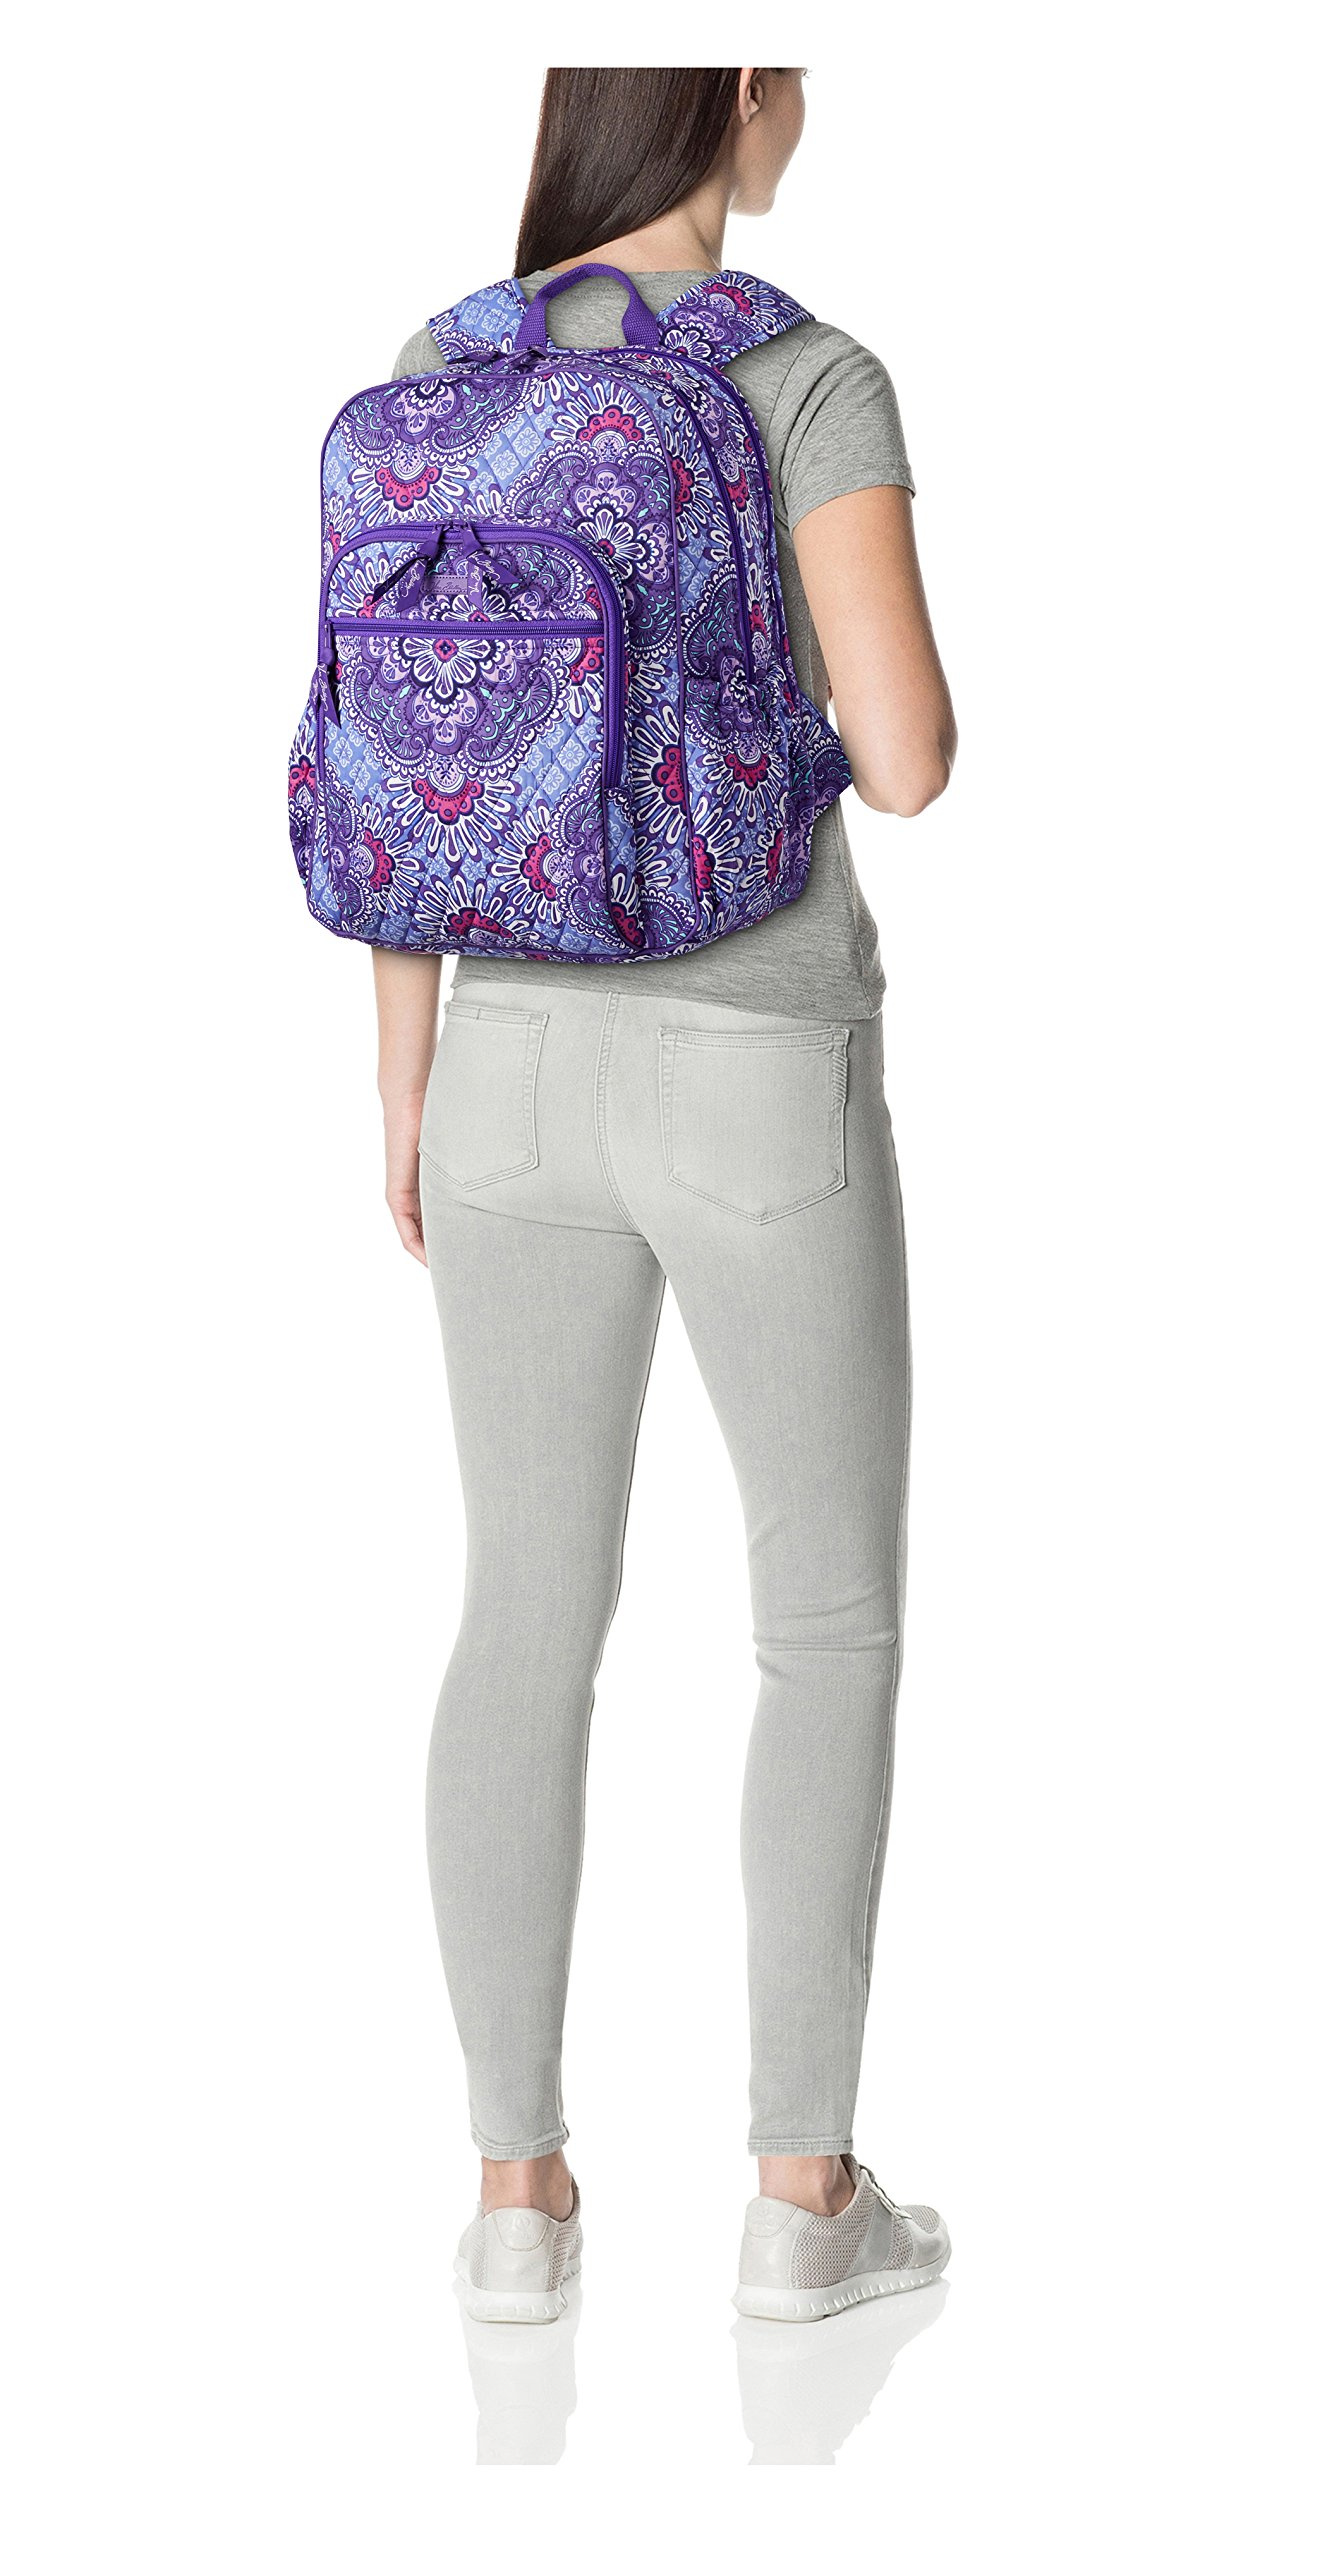 Women's Campus Tech Backpack, Signature Cotton, Lilac Tapestry by Vera Bradley (Image #2)